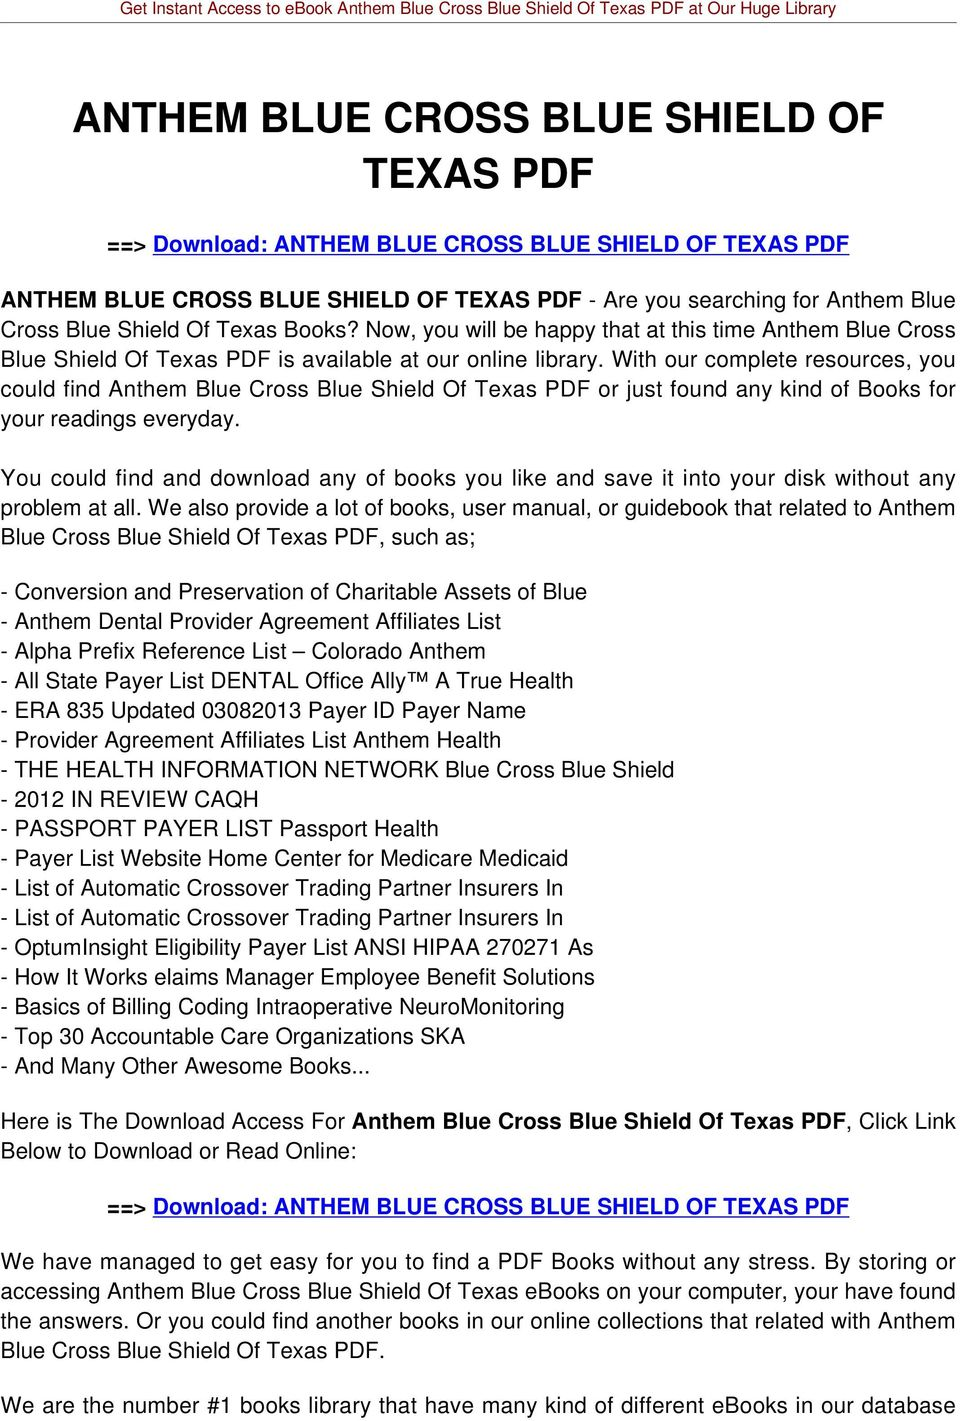 With our complete resources, you could find Anthem Blue Cross Blue Shield Of Texas PDF or just found any kind of Books for your readings everyday.